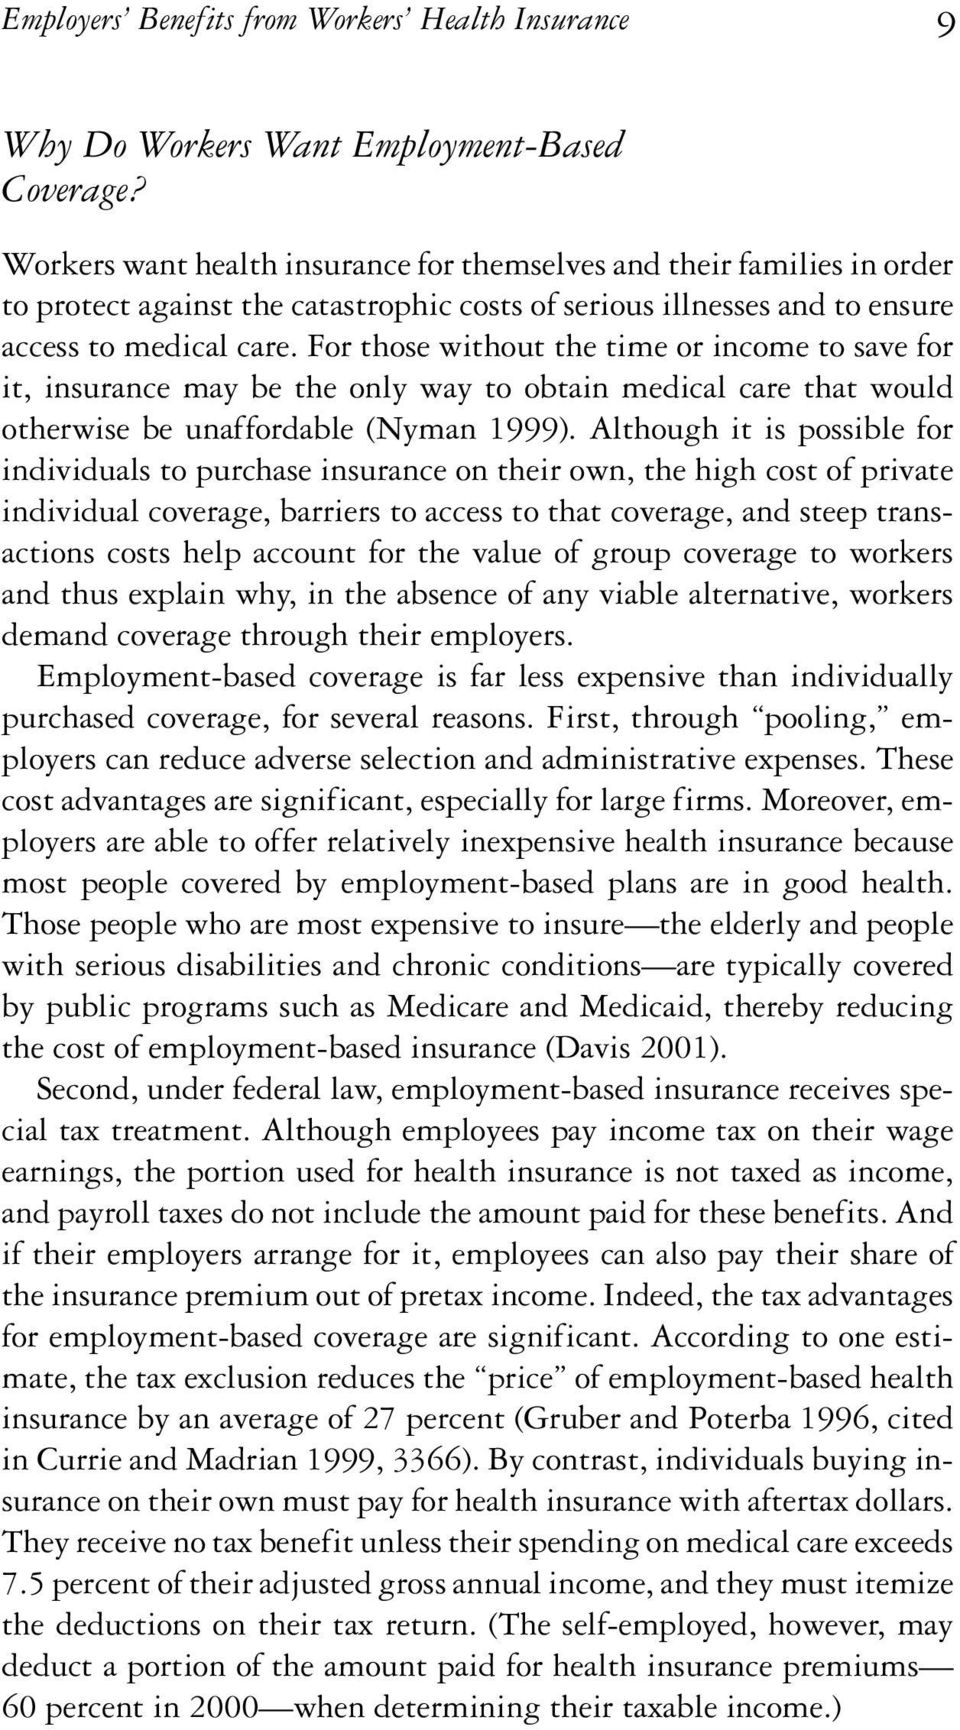 For those without the time or income to save for it, insurance may be the only way to obtain medical care that would otherwise be unaffordable (Nyman 1999).